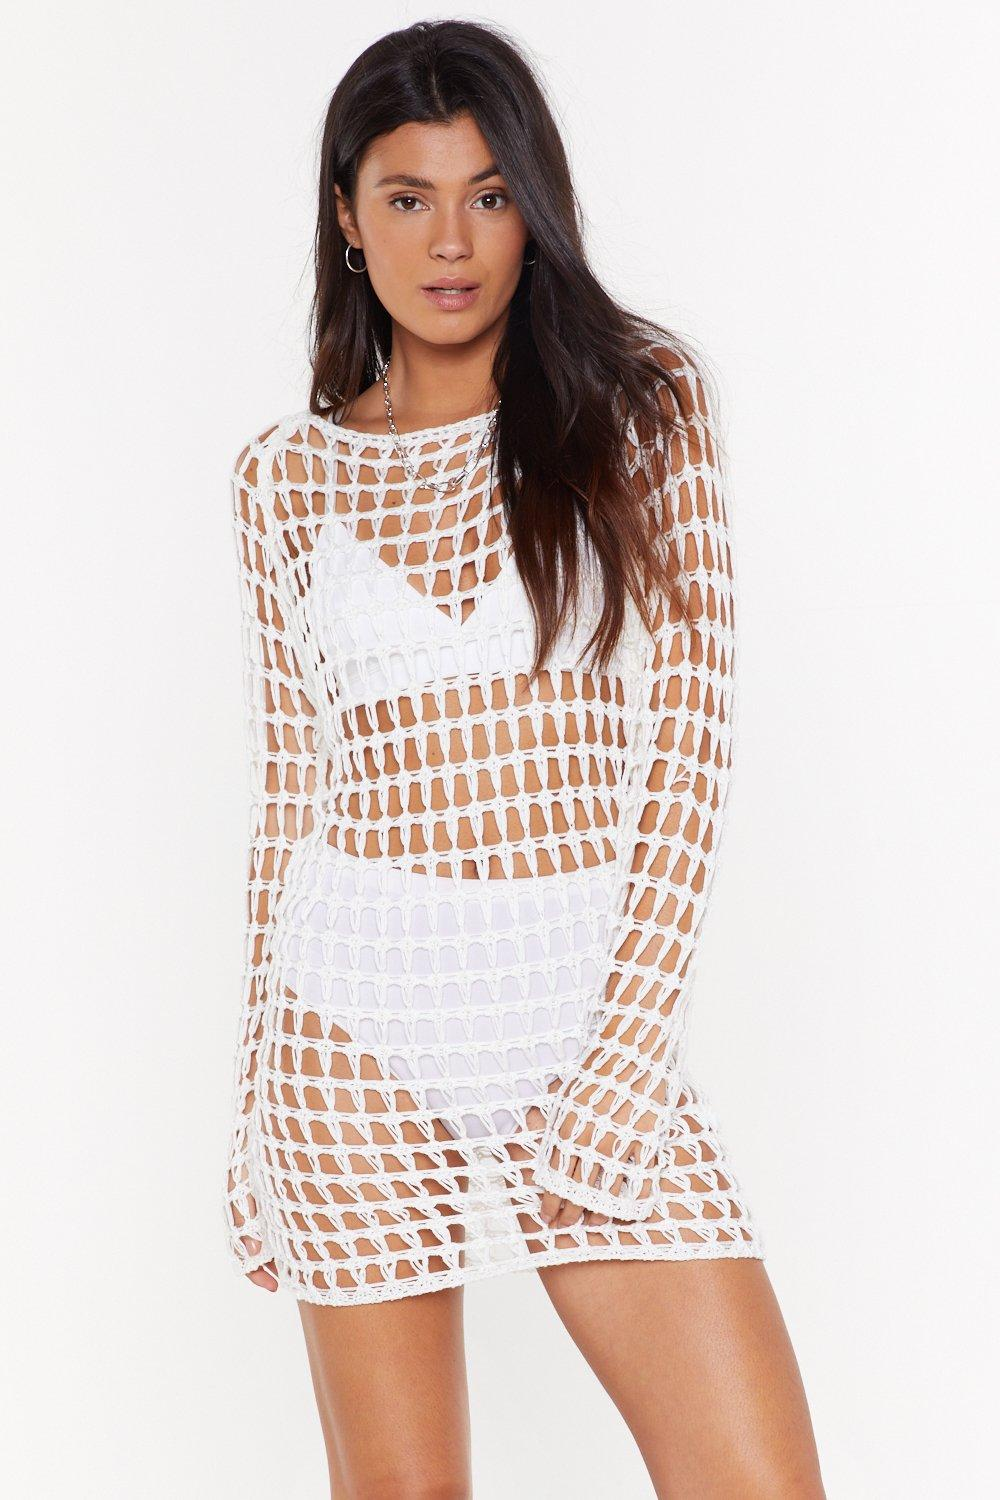 Hole With The Punches Crochet Mini Dress Shop Clothes At Nasty Gal